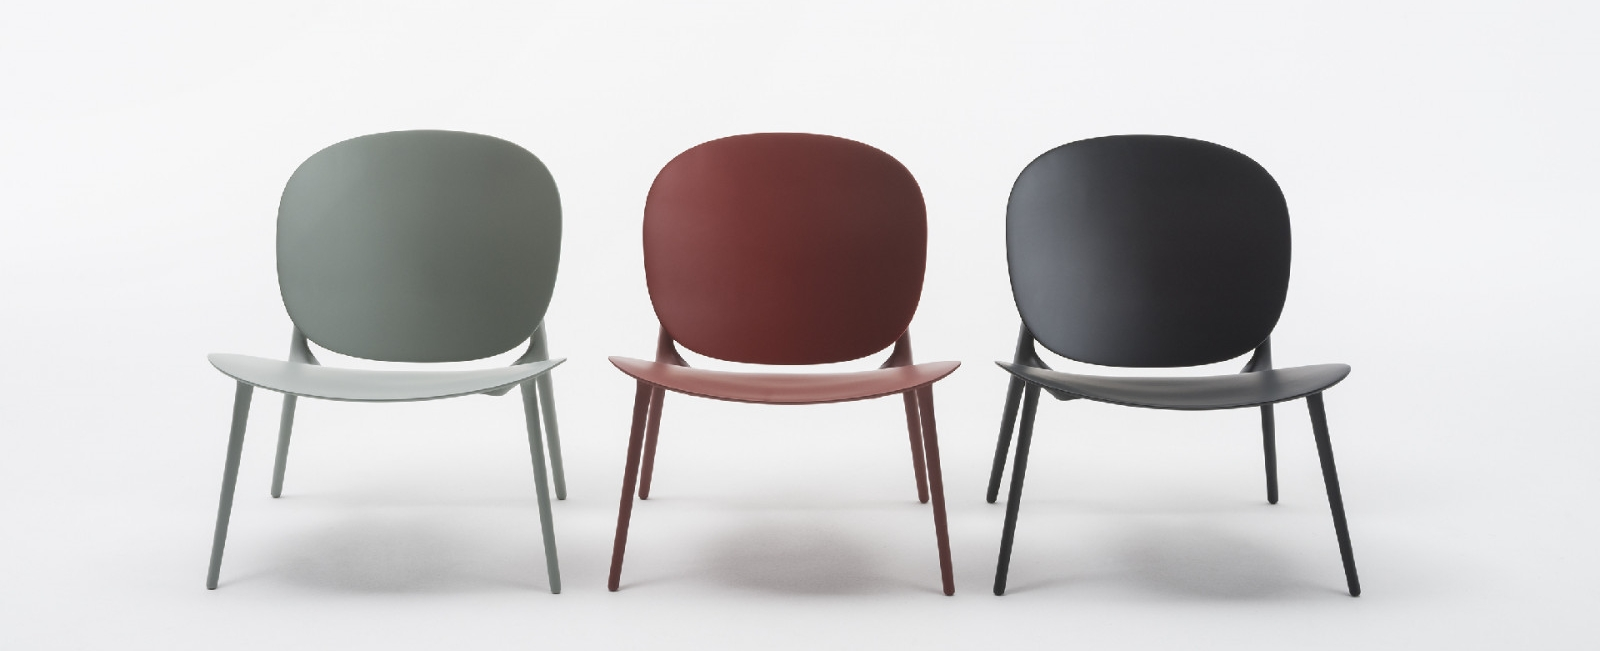 Be Bop chair by Ludovicca and Roberto Palomba for Kartell.